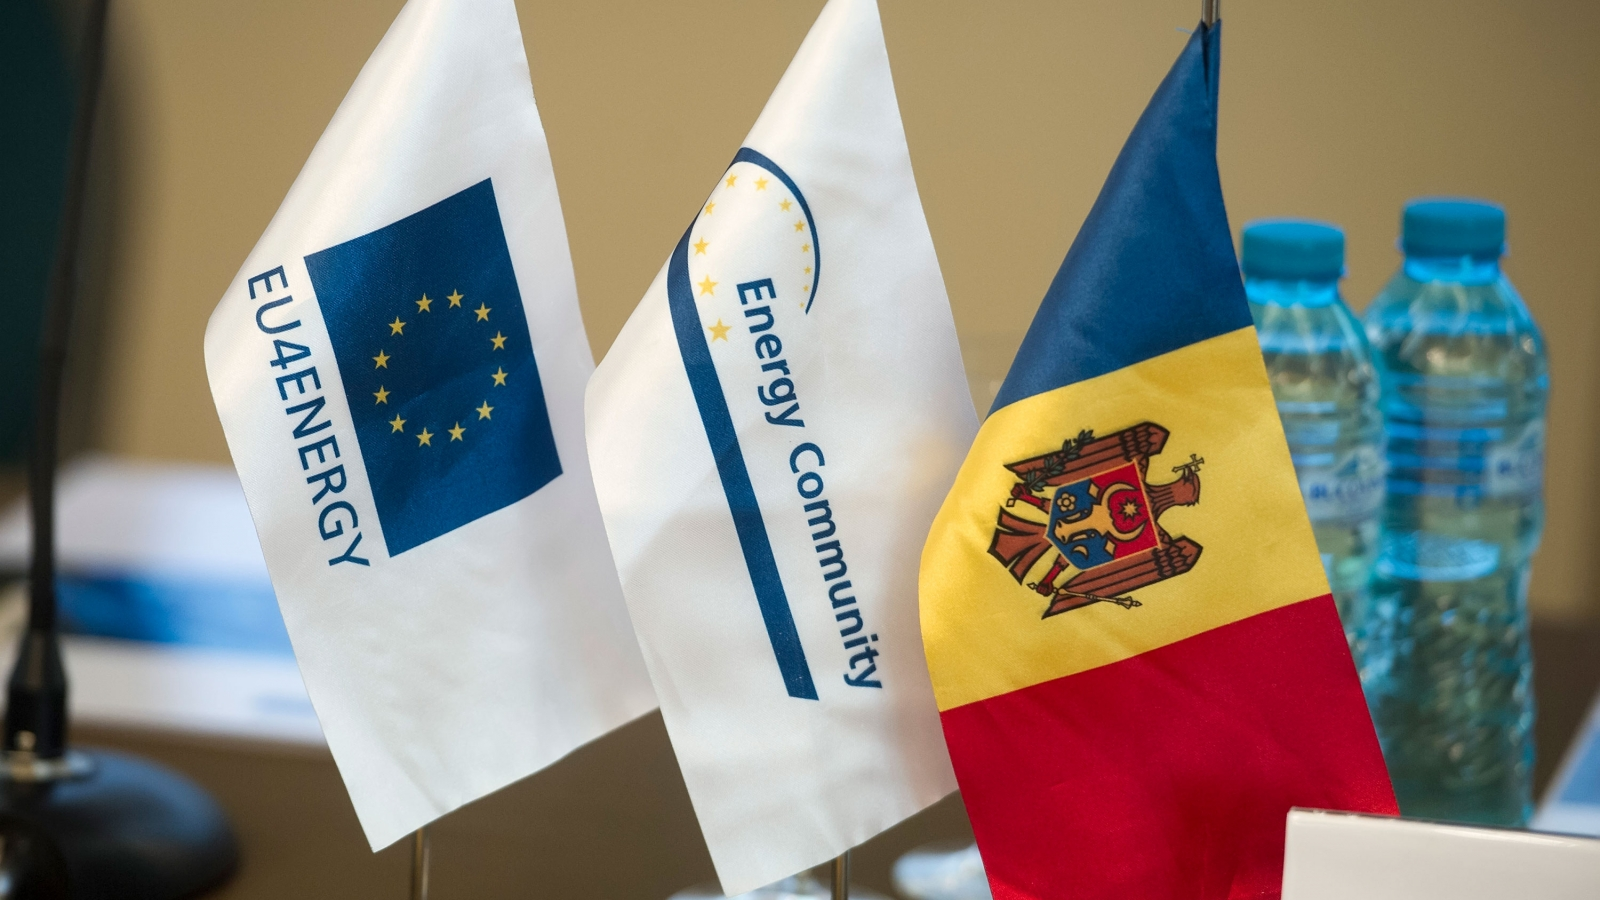 EU4Energy high-level policy talks on energy efficiency in the Republic of Moldova